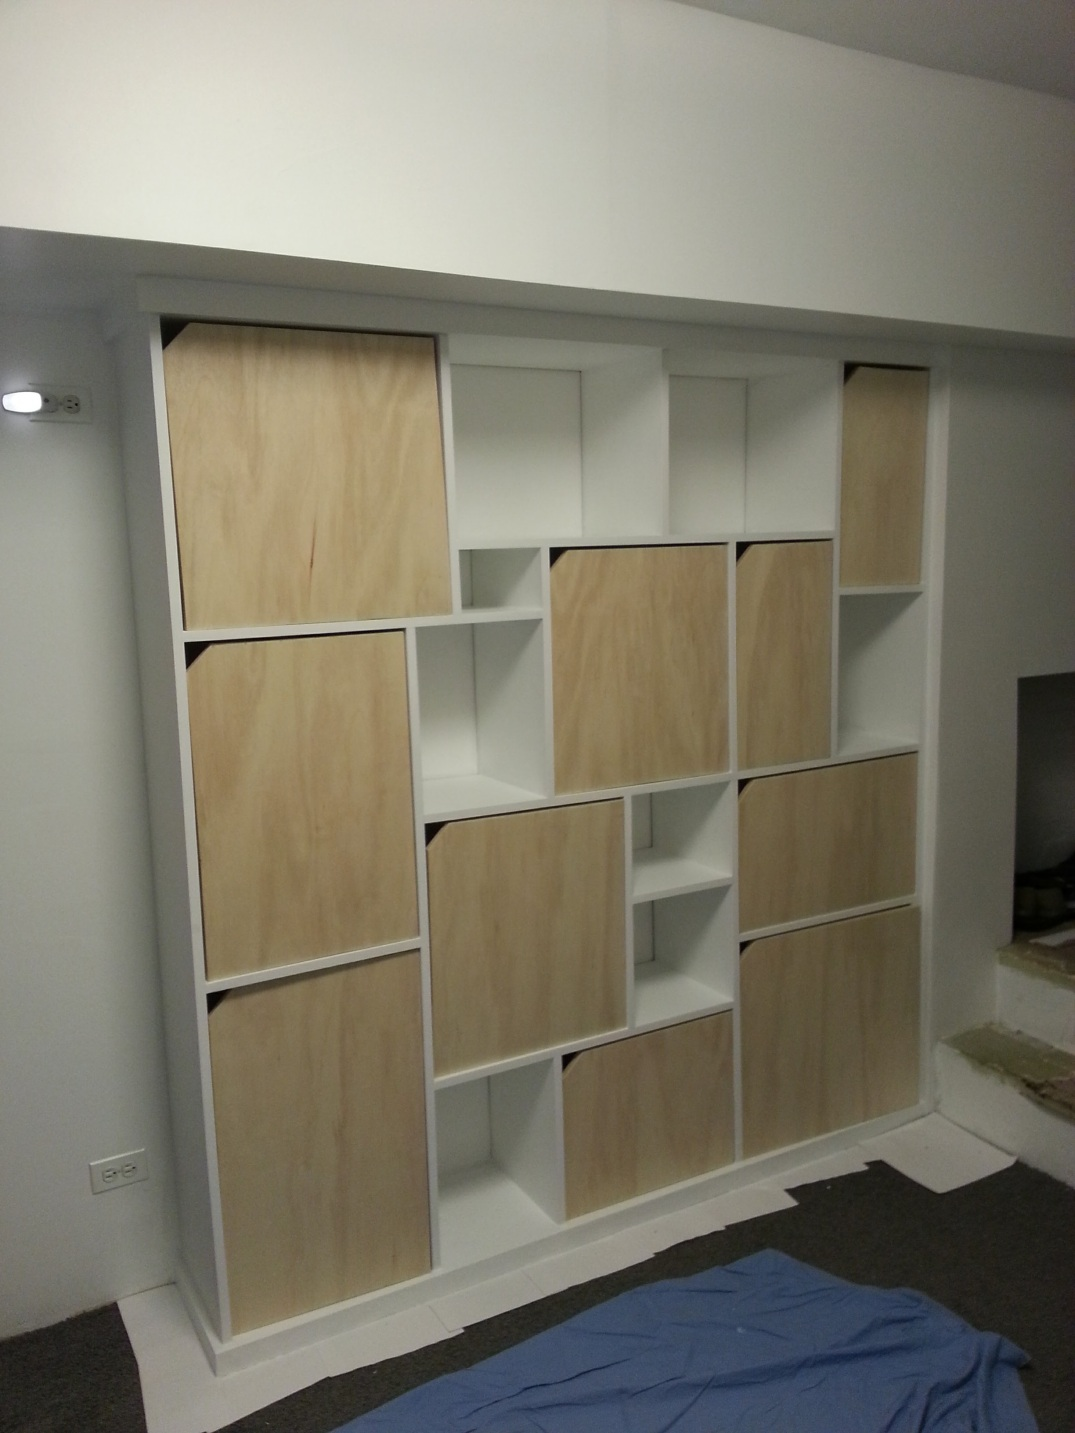 Cubic built-in cabinets - WIP